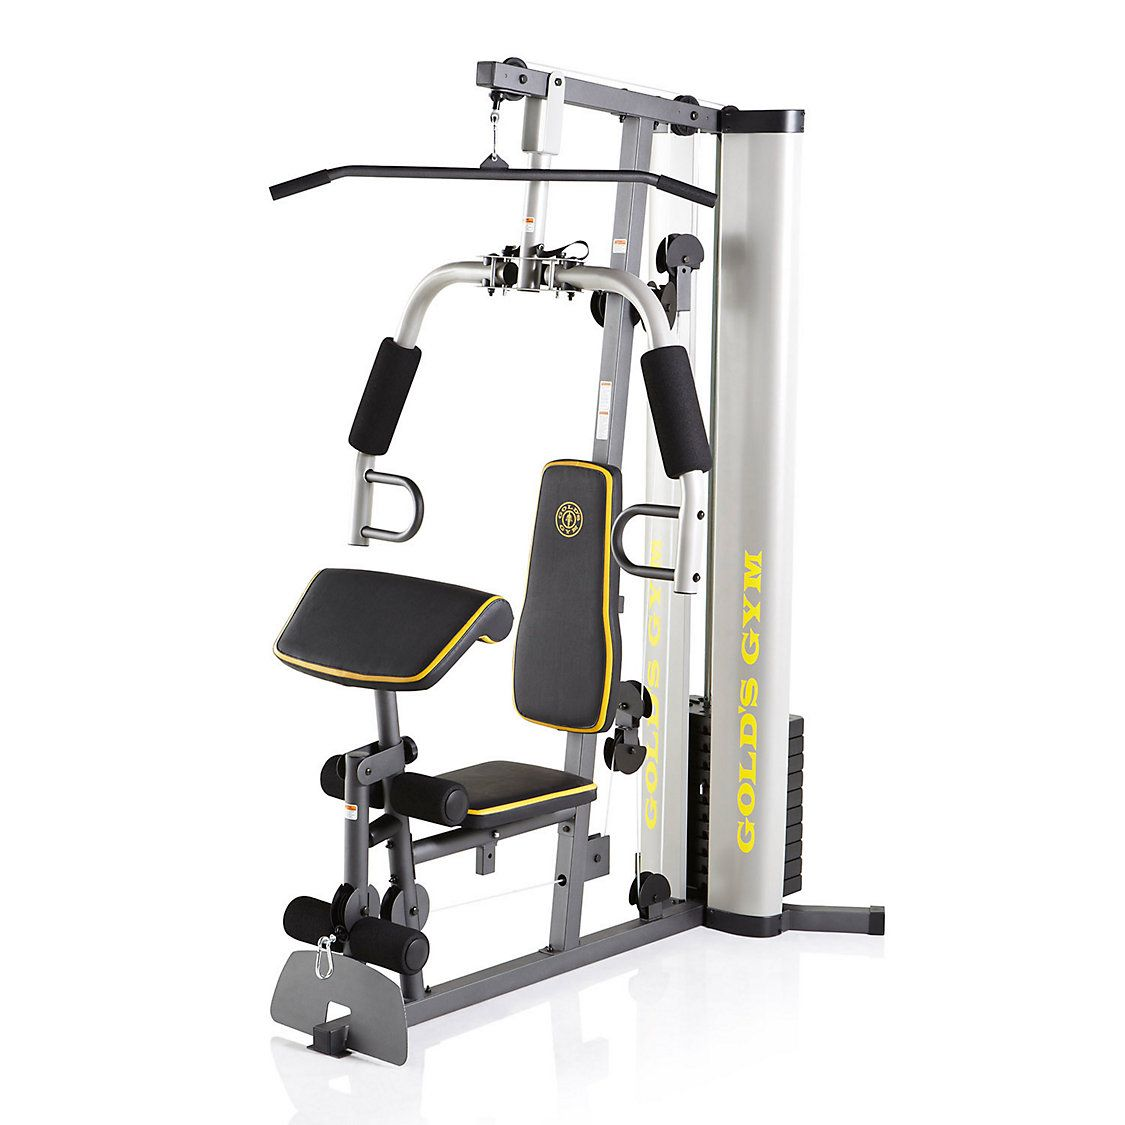 Gold S Gym Xrs 55 Home Gym Kohls In 2021 At Home Gym Workout Room Home Diy Home Gym